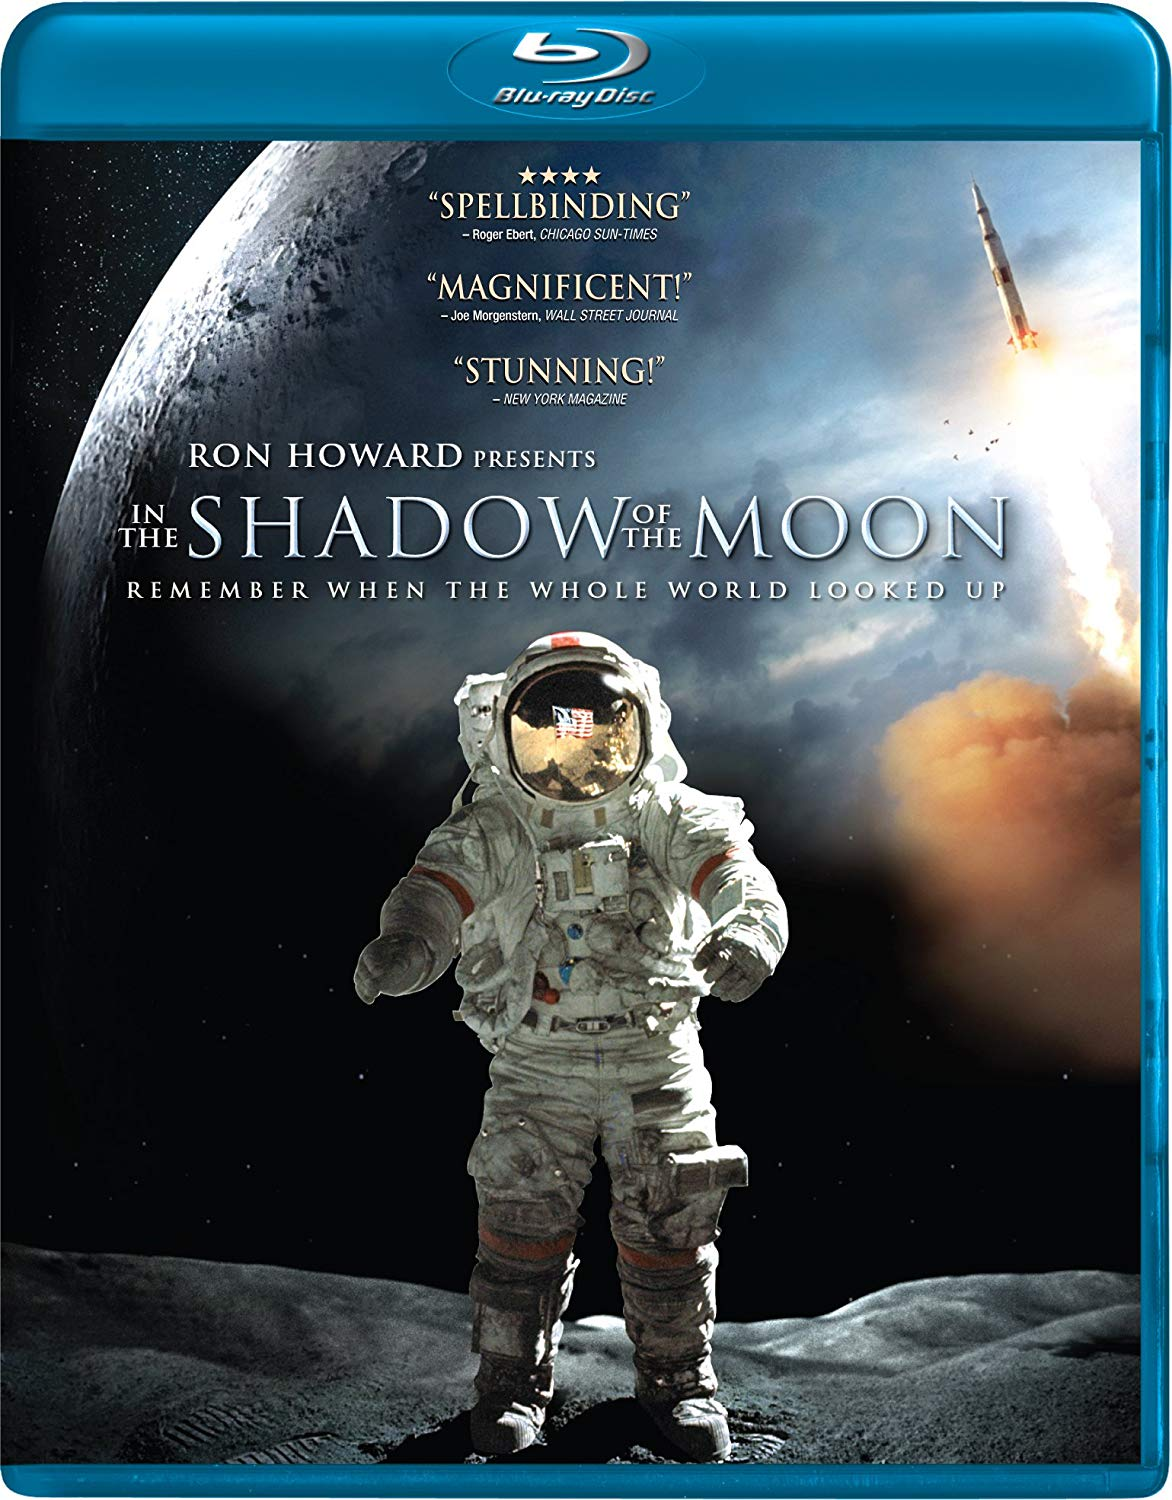 In the Shadow of the Moon (2007) Blu-ray - Buy from Third-Party Sellers at Amazon